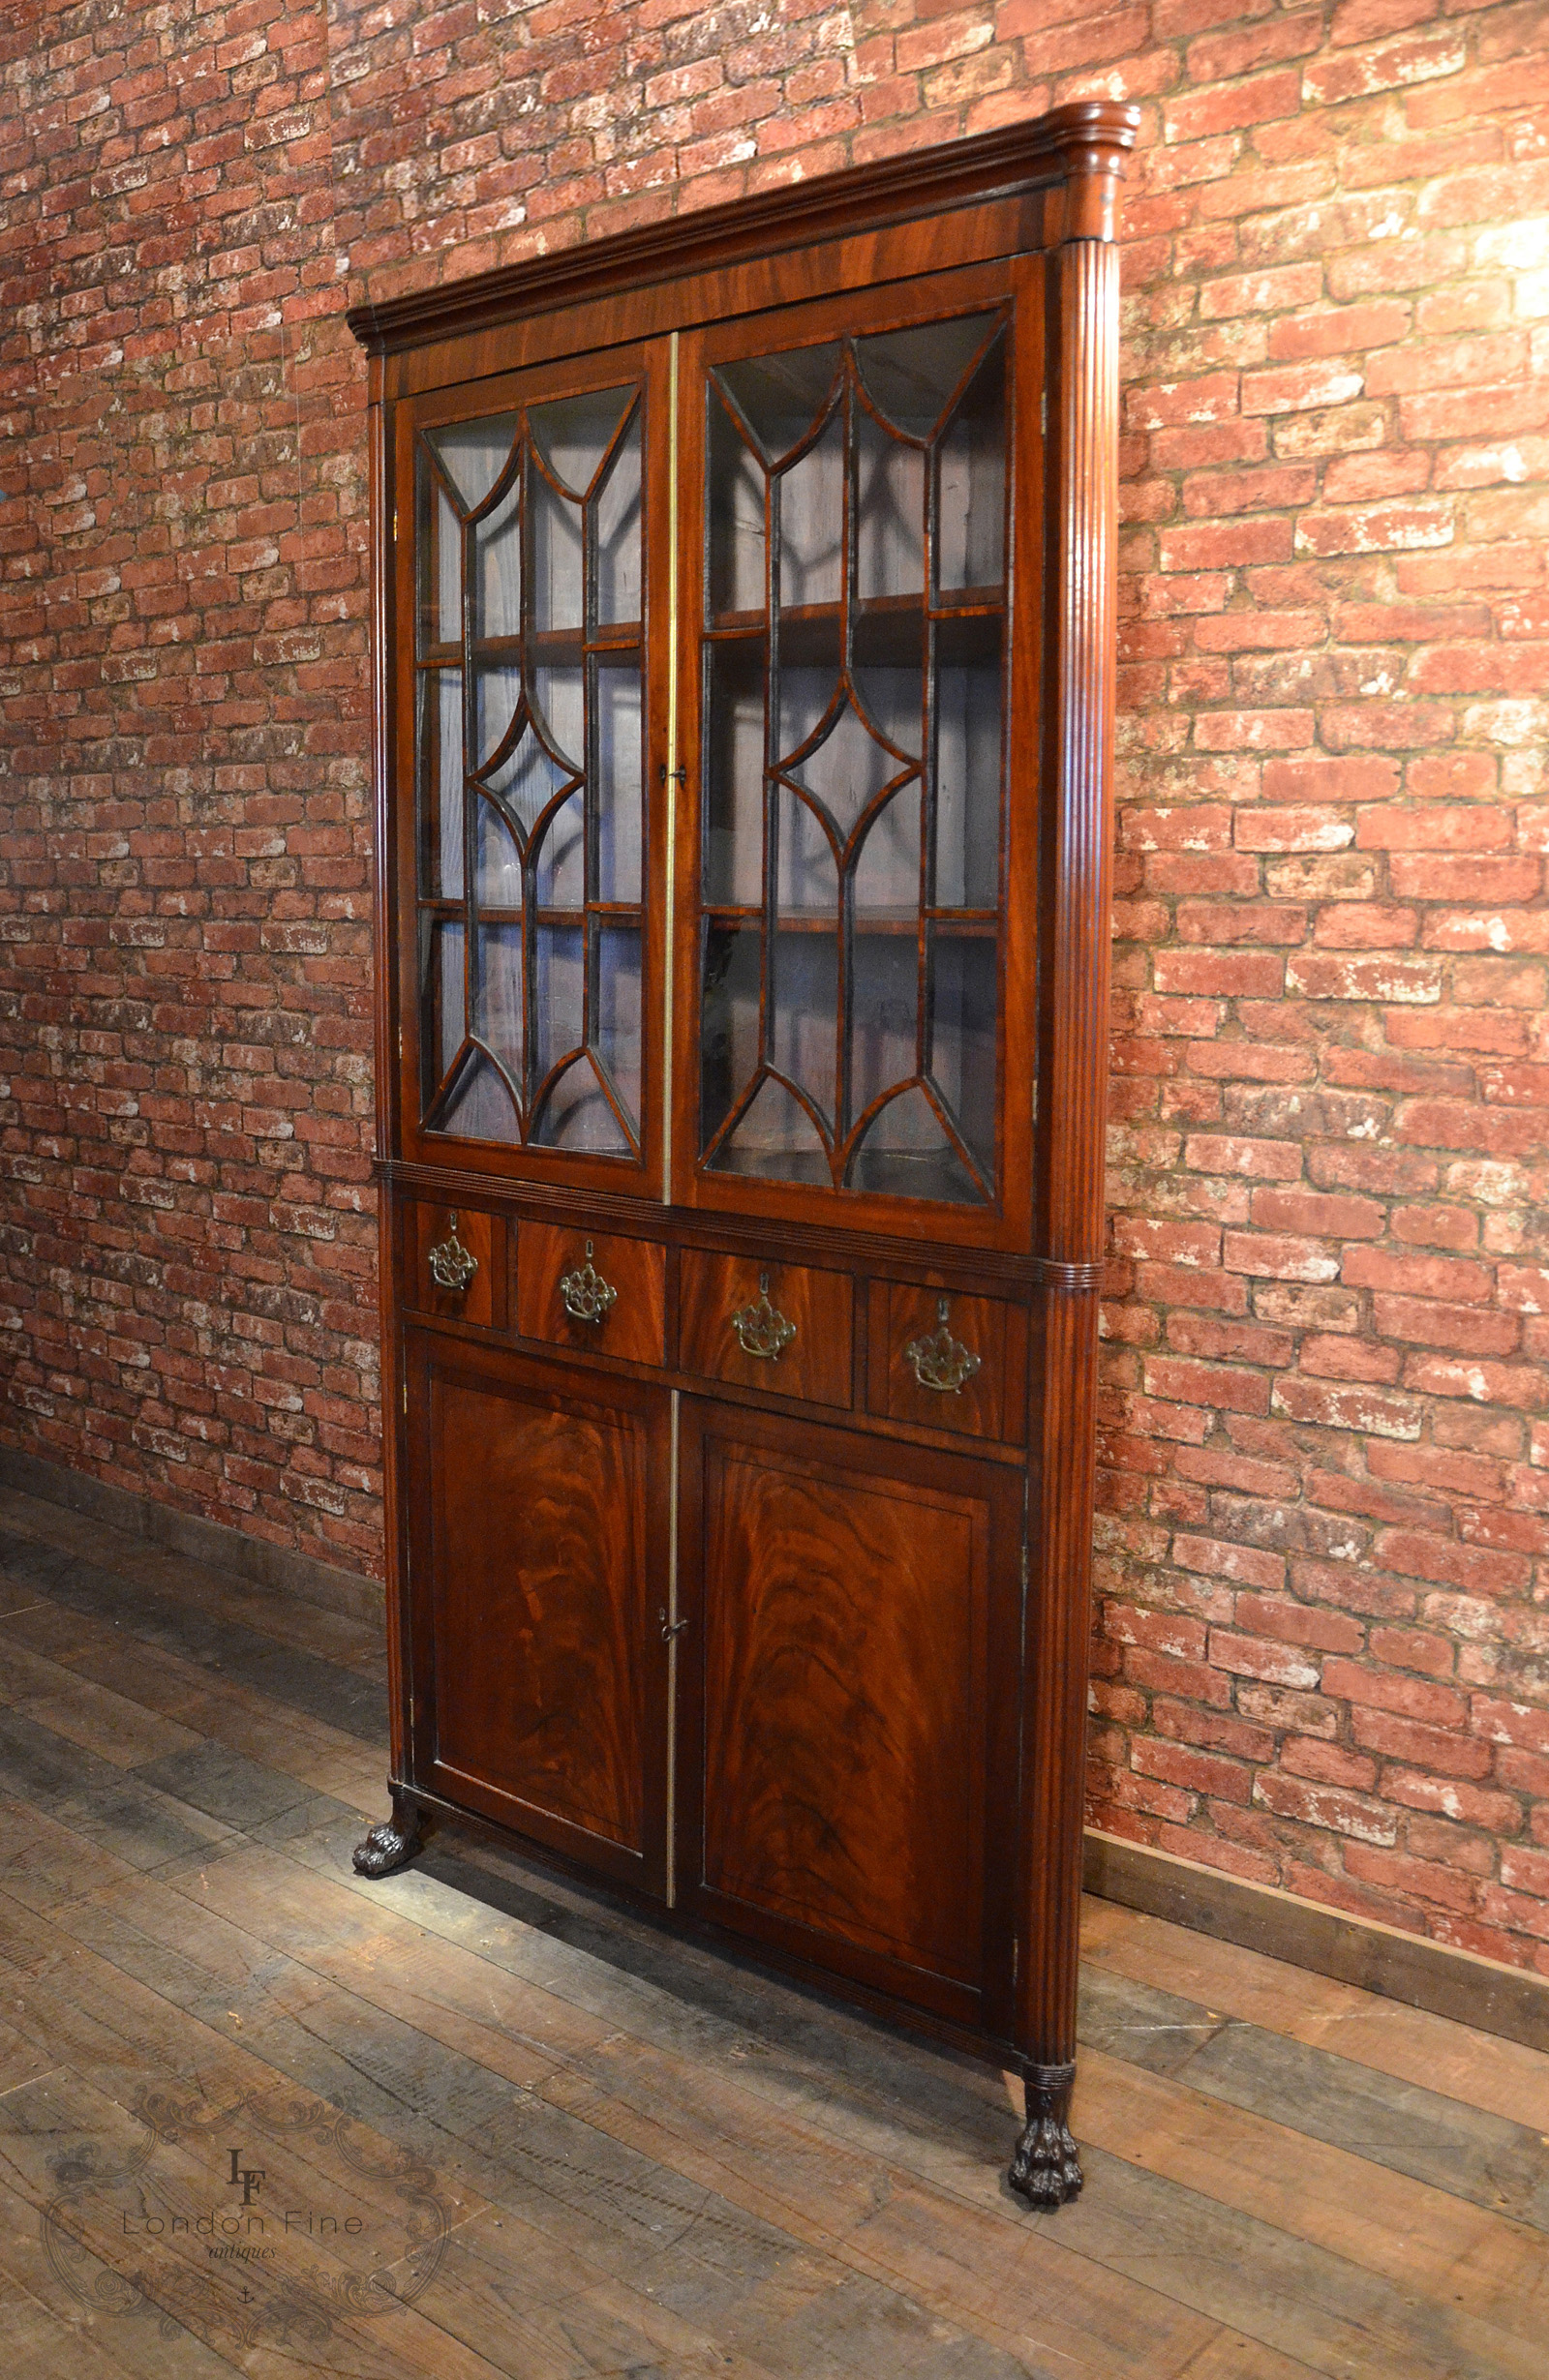 Antique Regency Tall Corner Cabinet Astragal Glazed